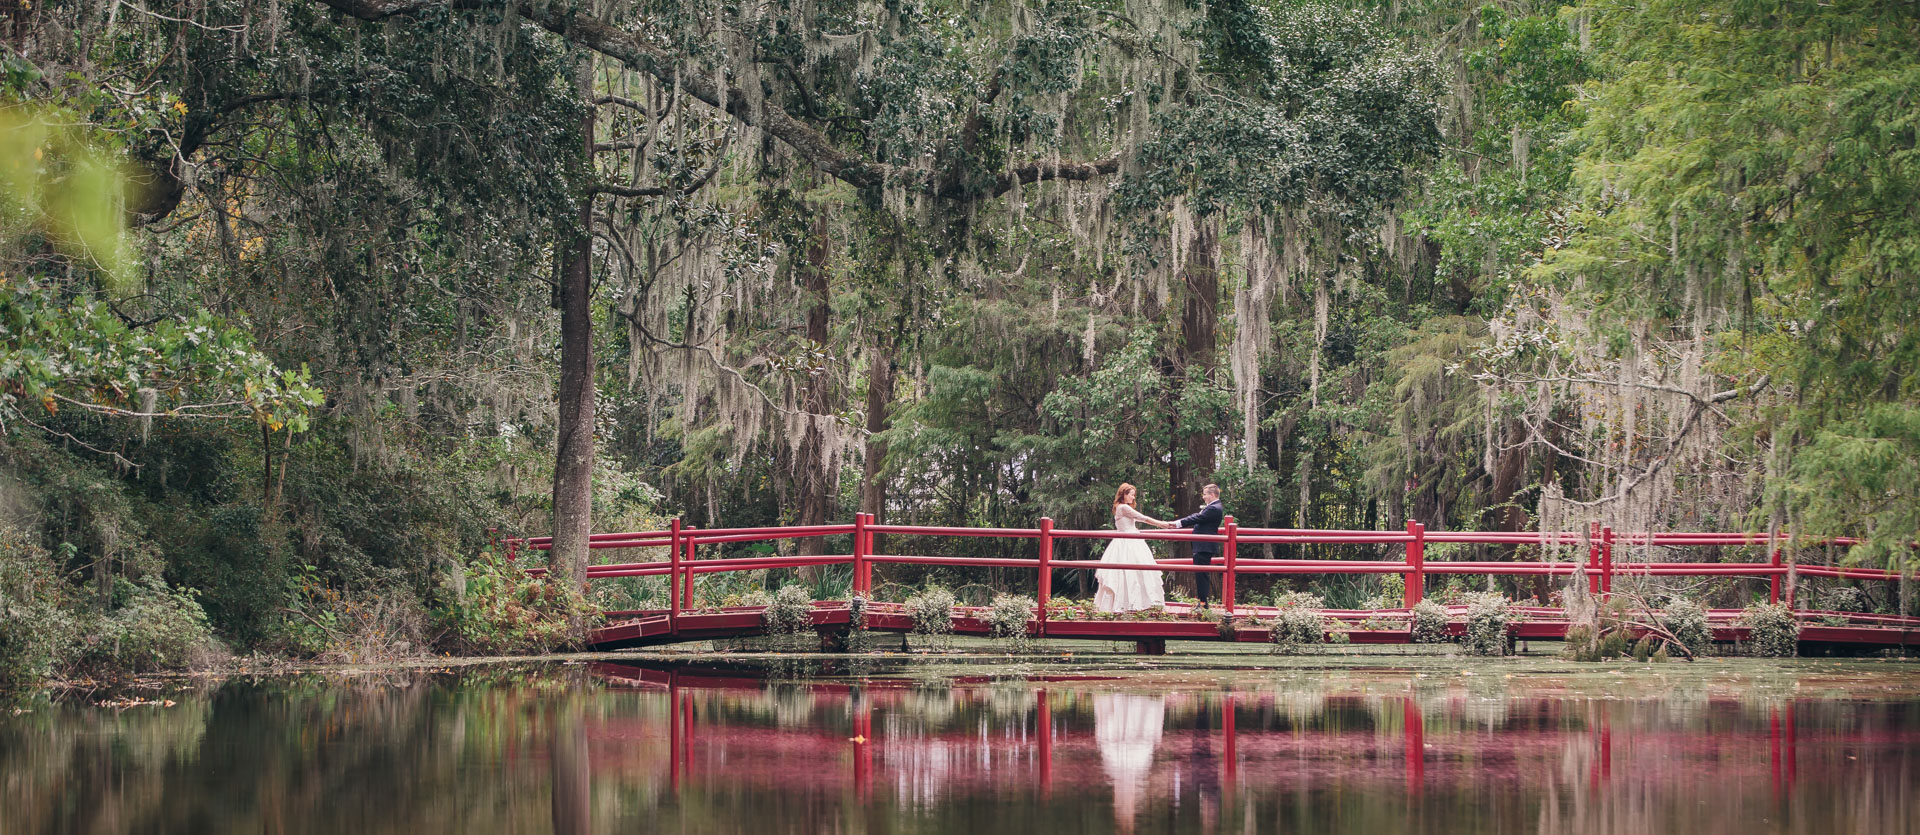 red-bridge-with-bride-and-groom